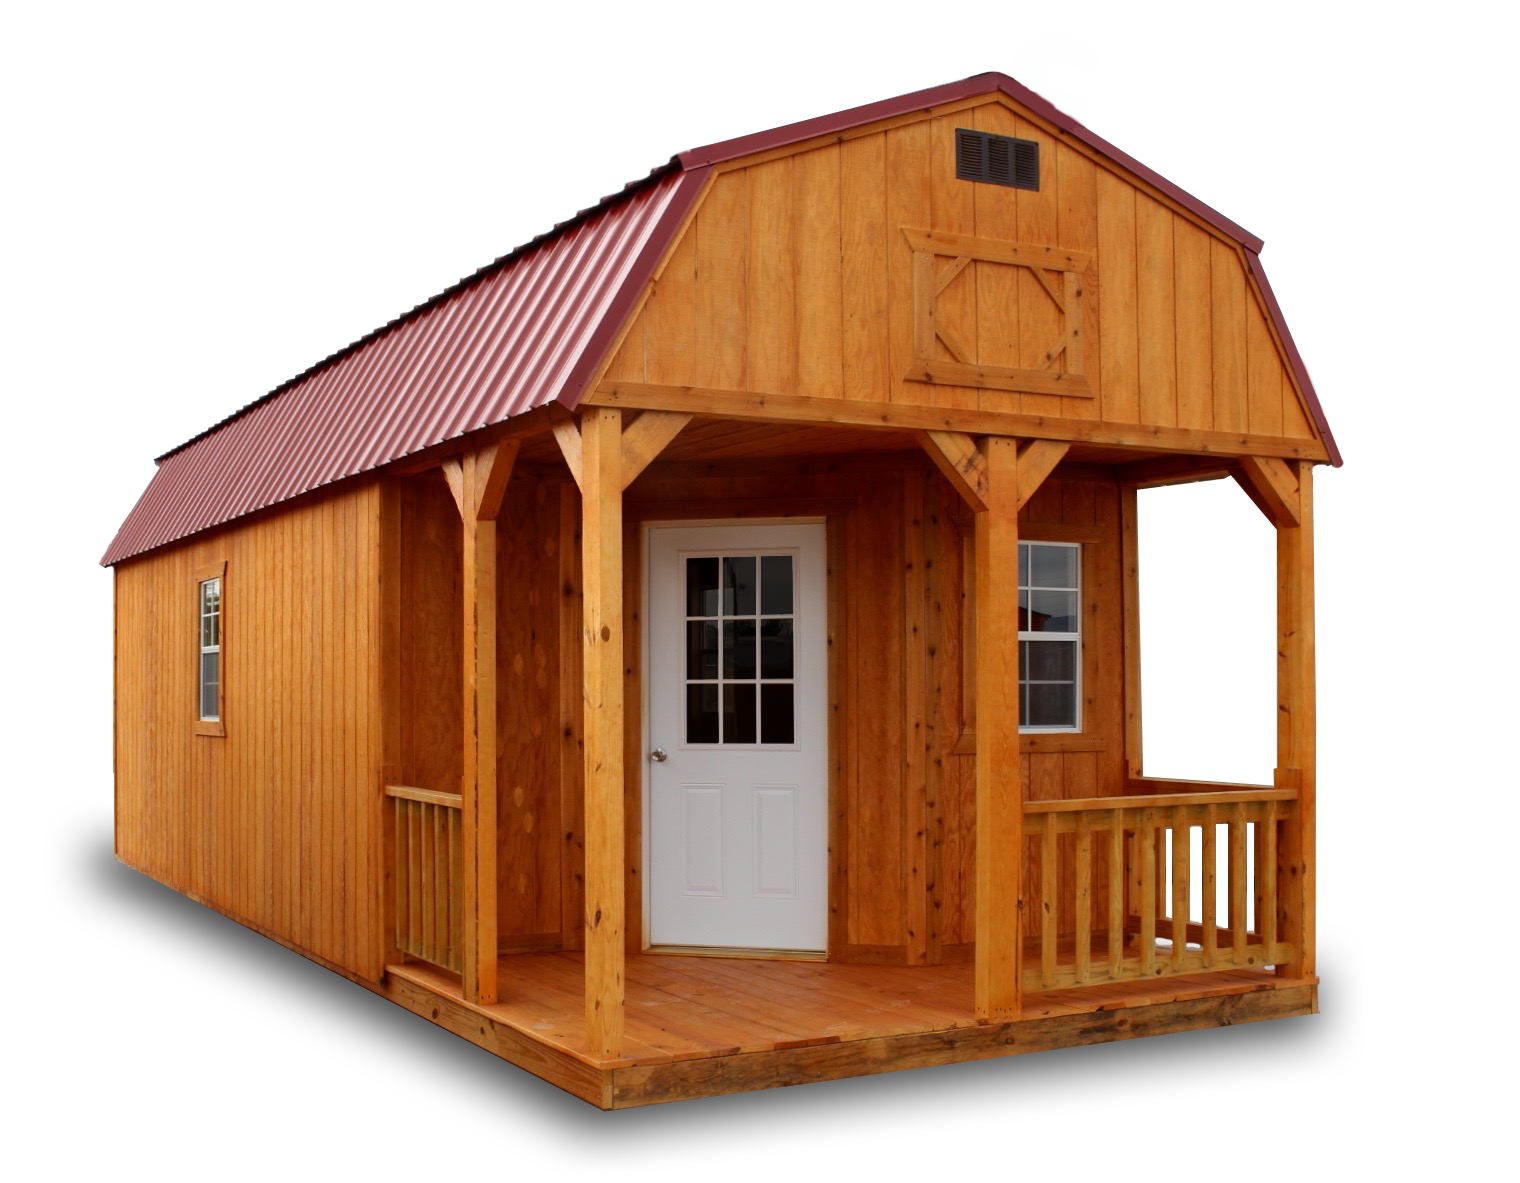 Fir Wood Siding or LP® SmartSide® painted panels, 2 lofts, 3 windows, door, porch, wood railing, opening loft door. Free Shipping within first 50 miles.